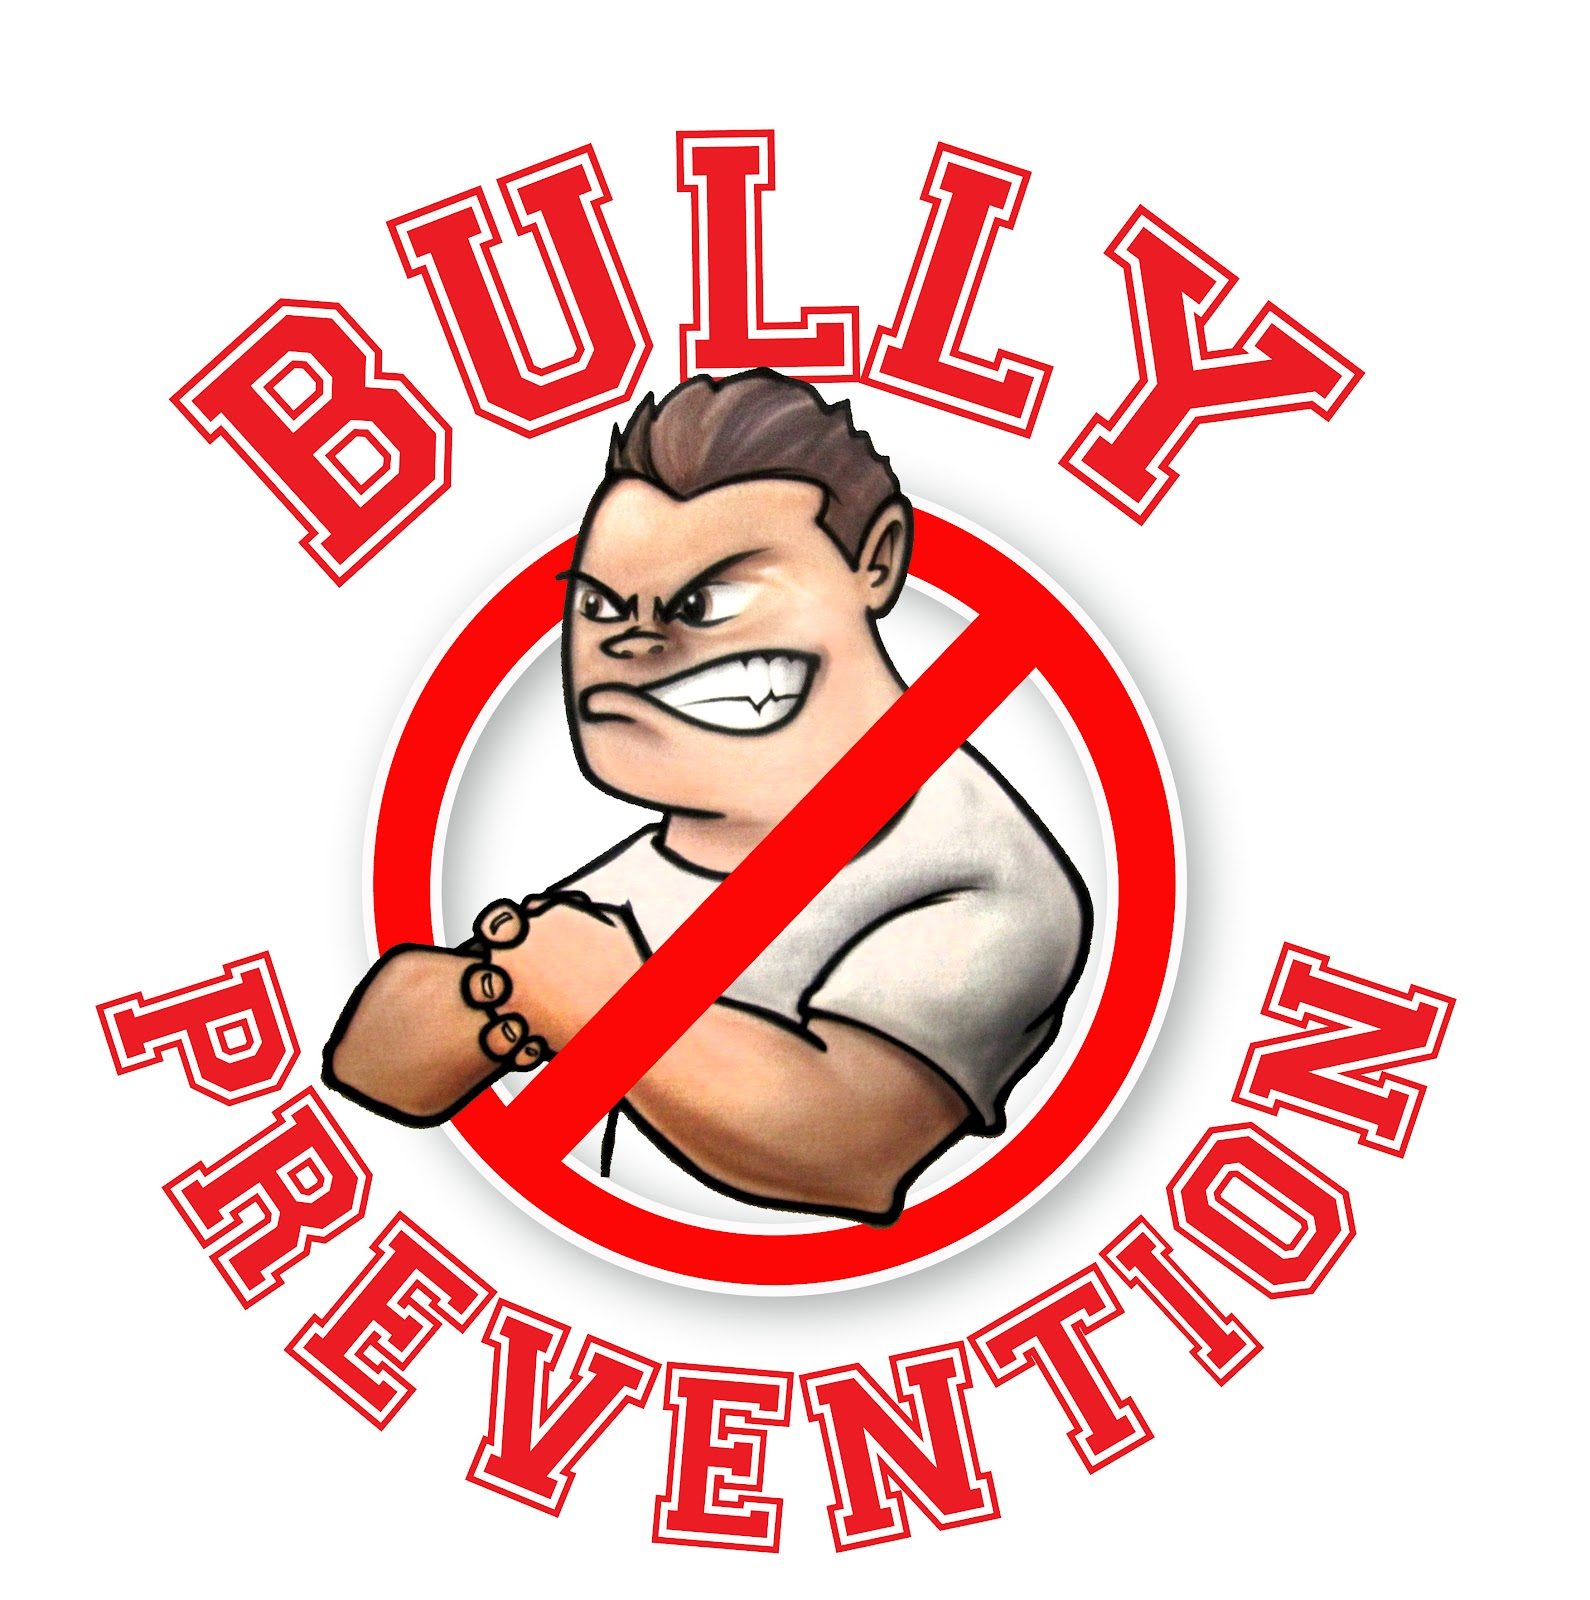 Bully clipart bullying prevention. Tips for teachers principals